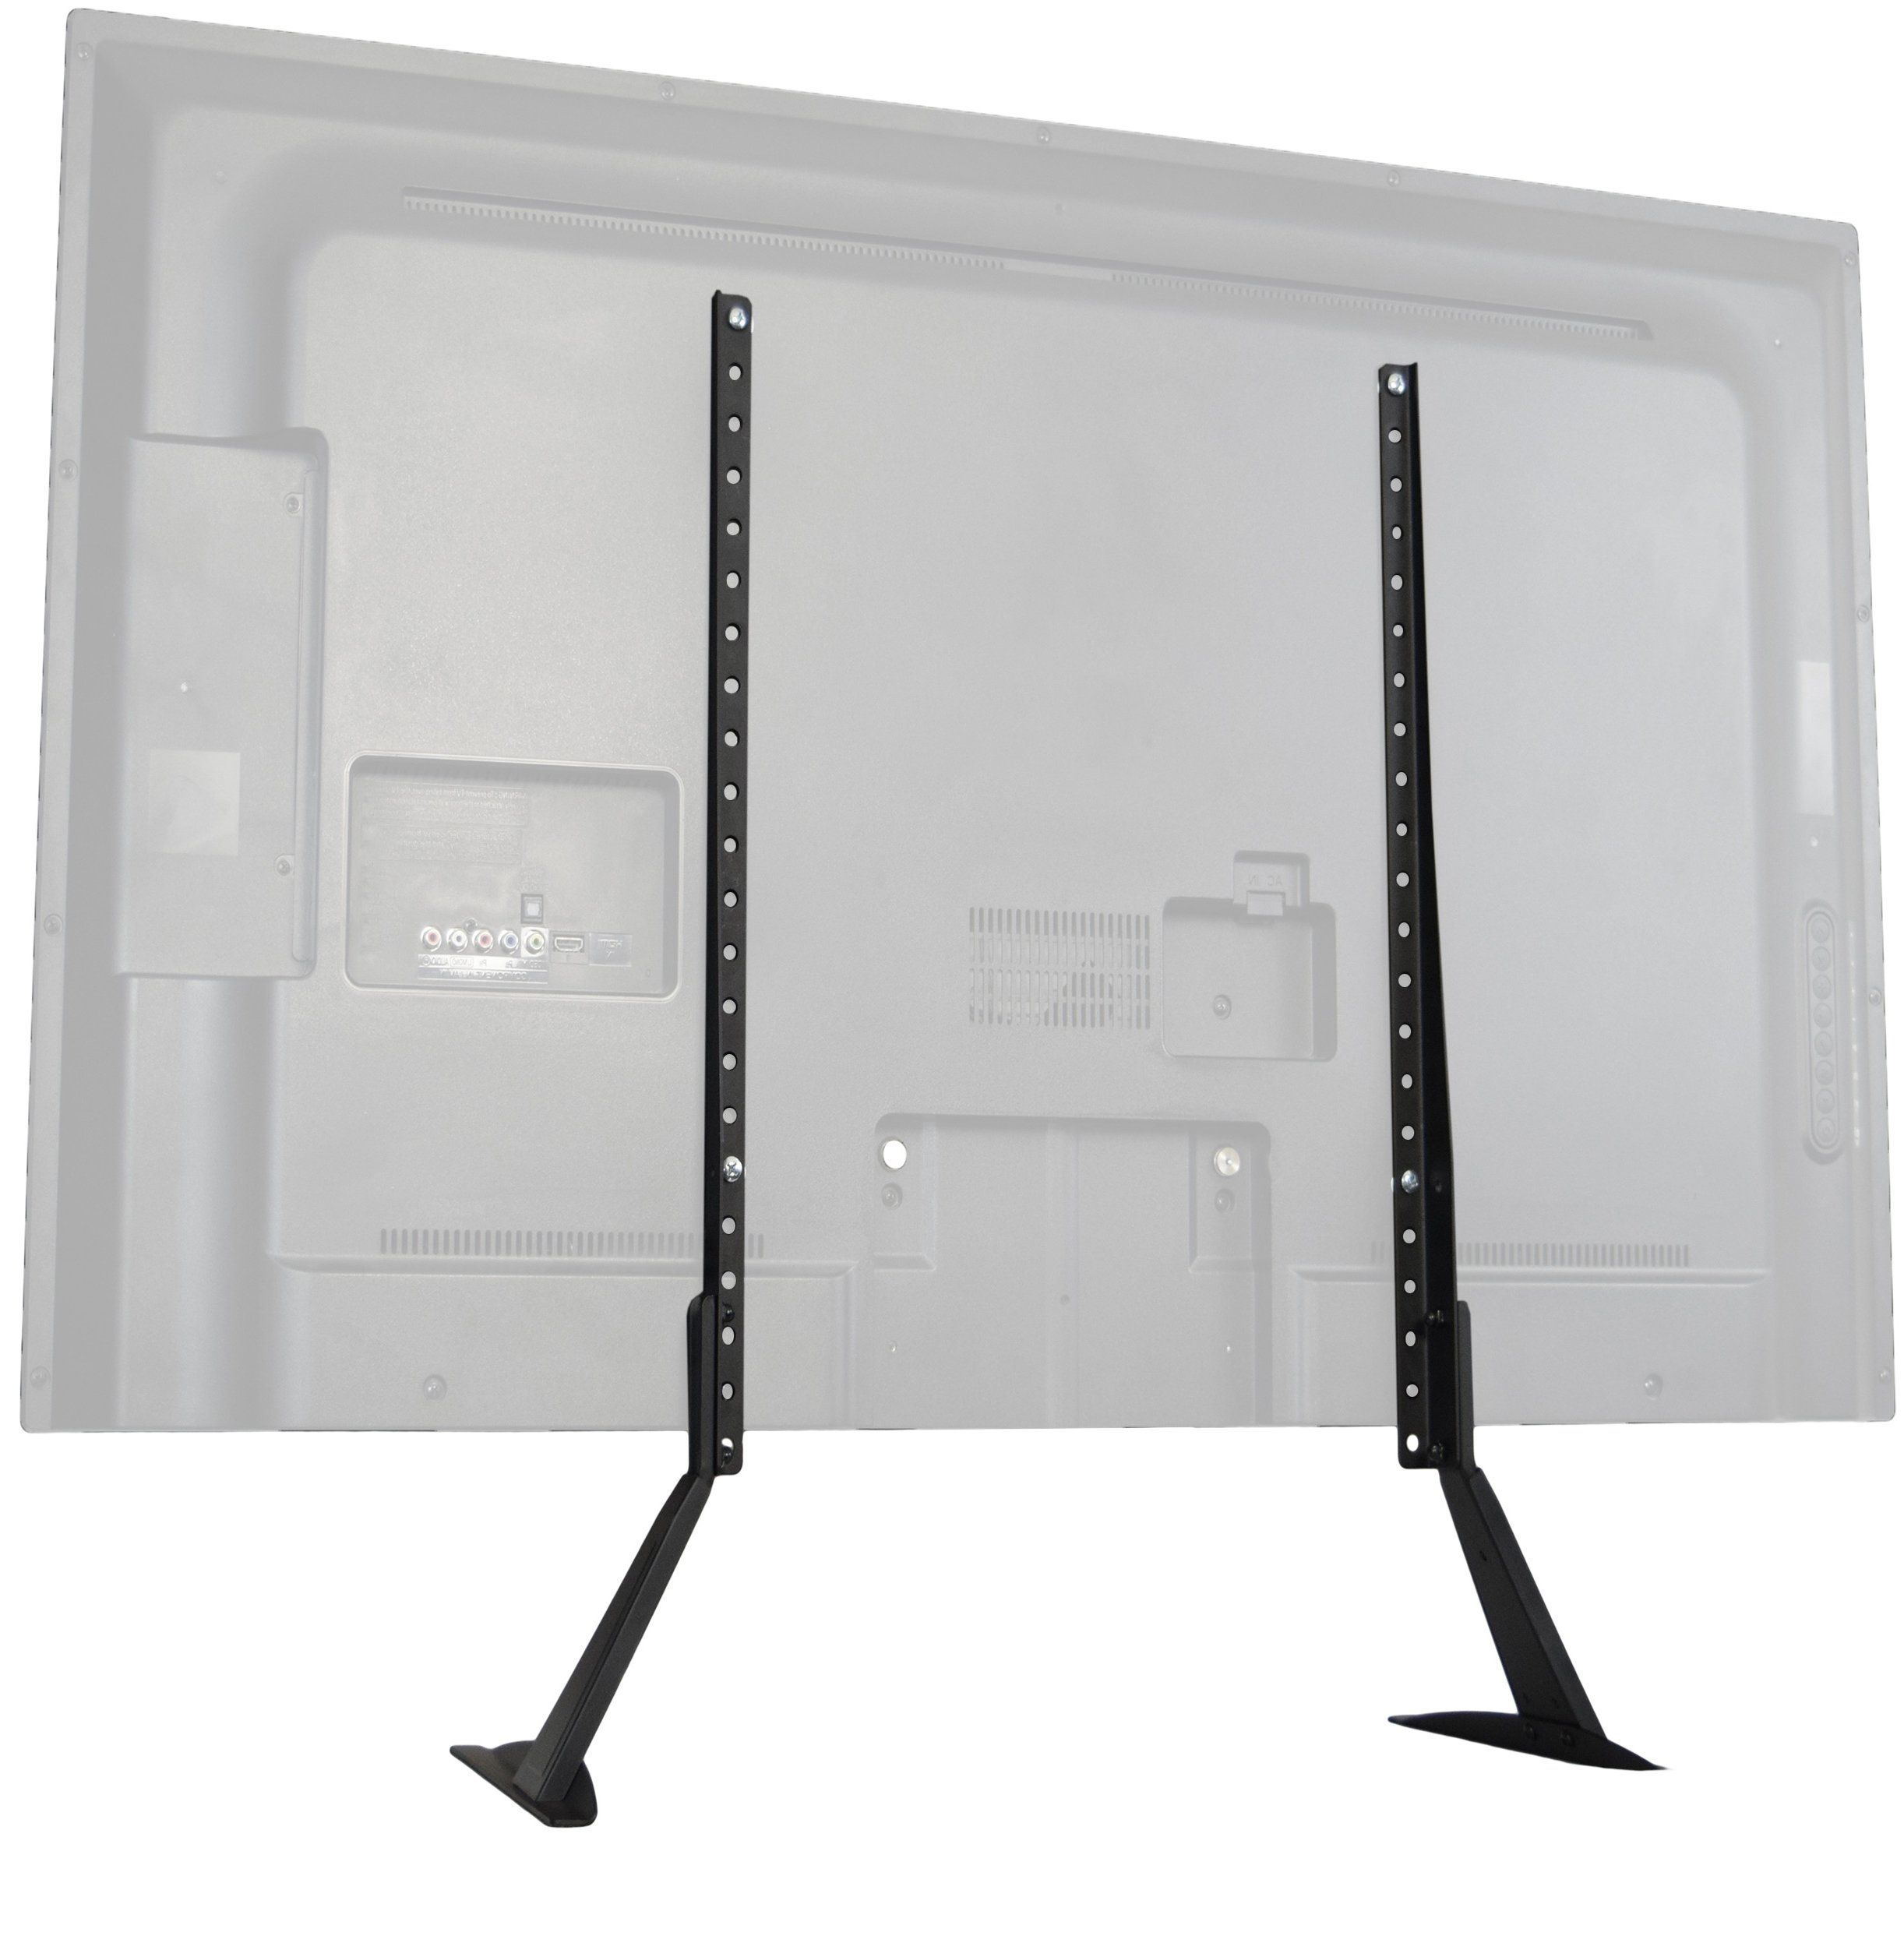 "VIVO Universal LCD Flat Screen TV Table Top Stand / Base Mount fits 27"" to 55"" T.V. (STAND-TV00T)"